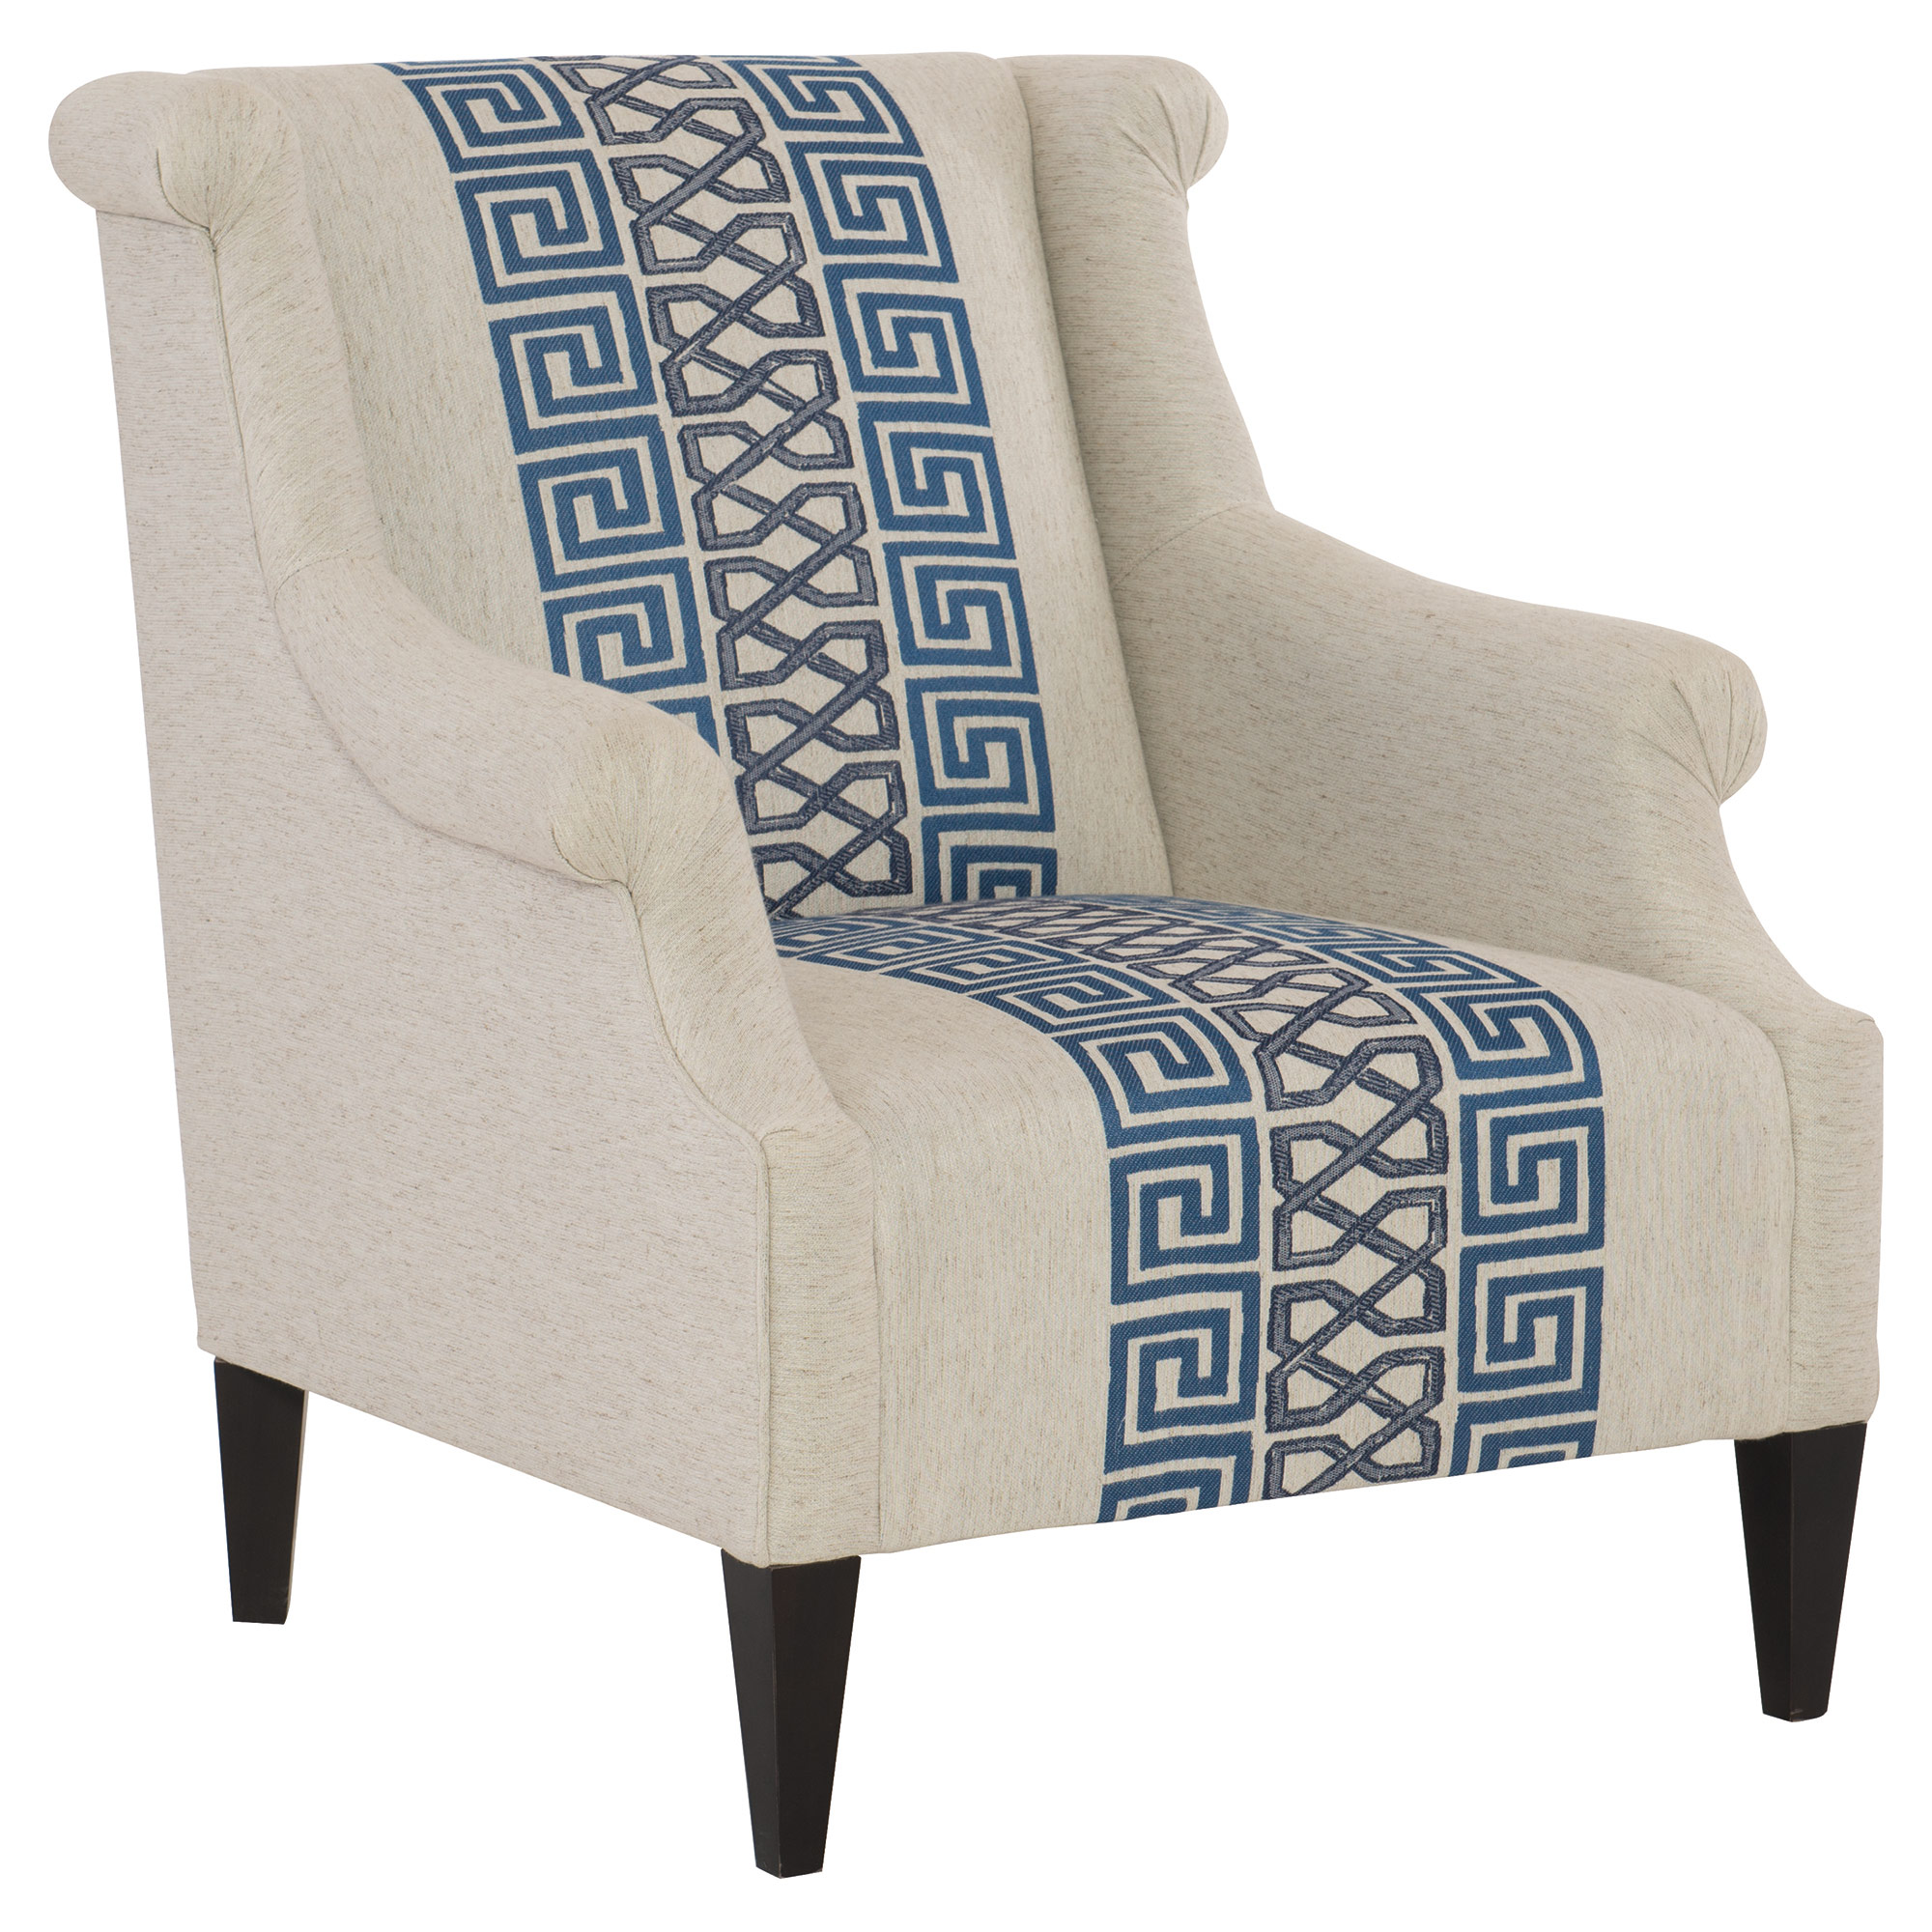 Callixto Modern Blue Greek Grey Beige Armchair